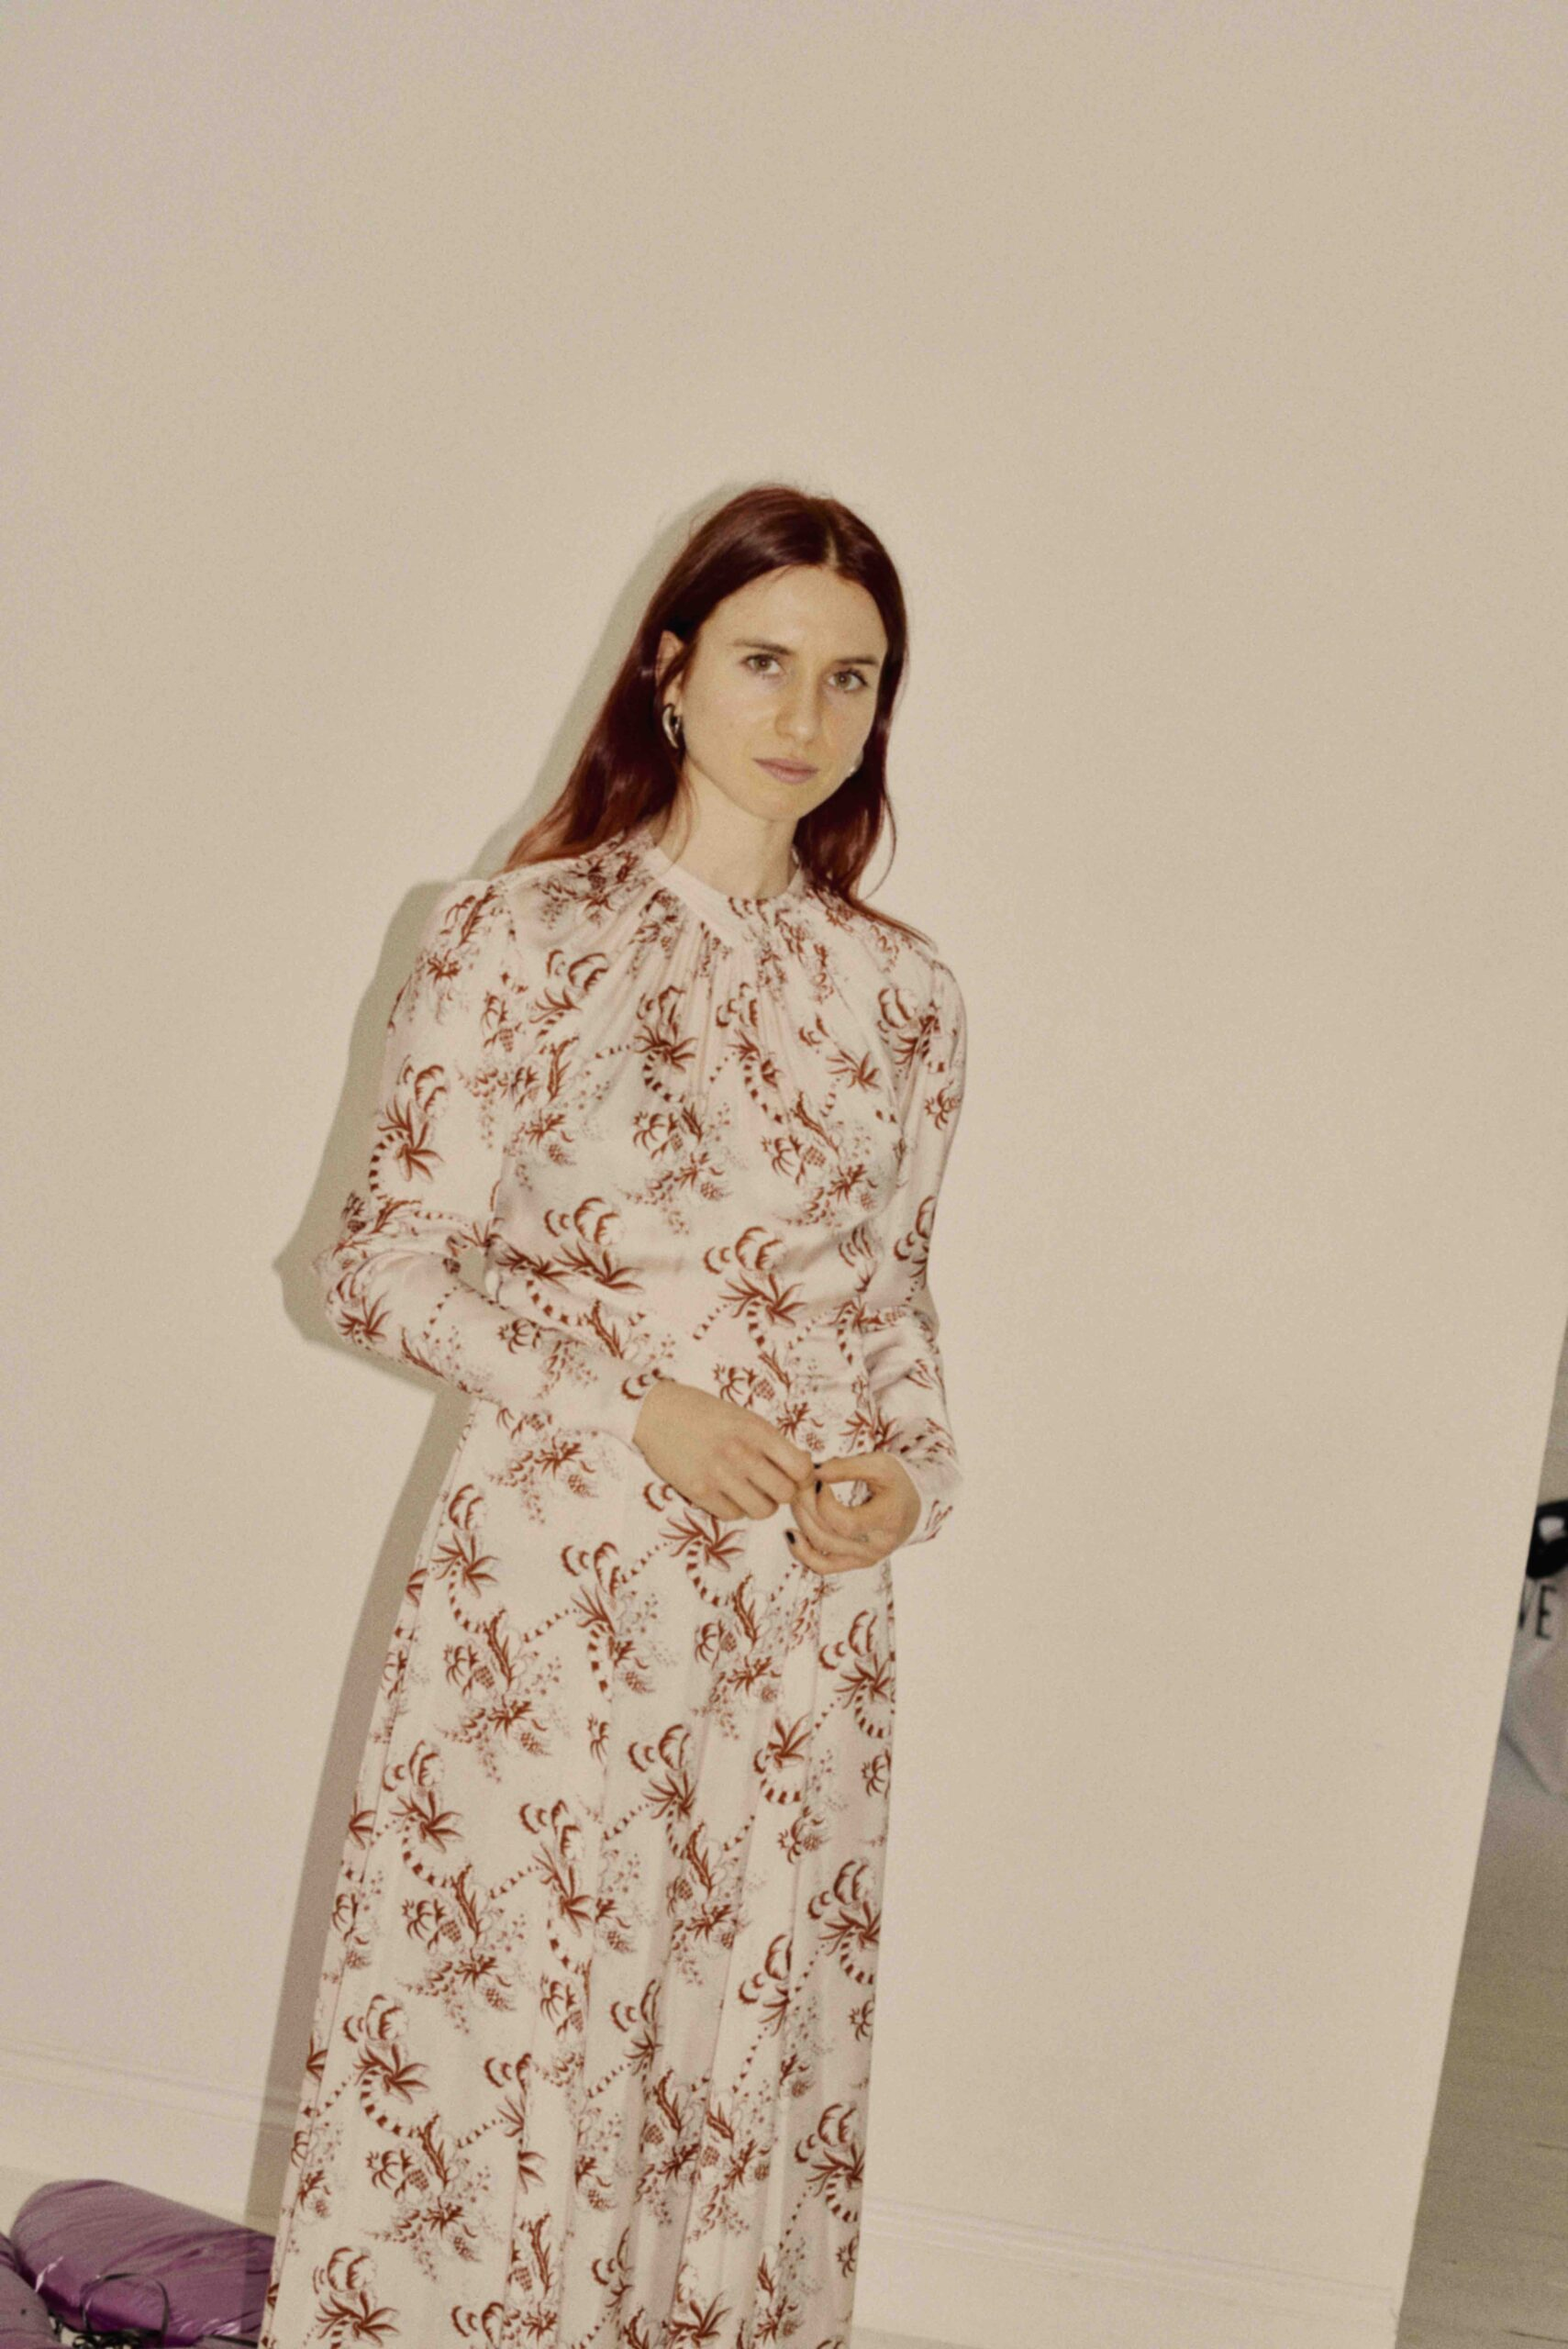 Isabella Burley on her journey from dropping out of CSM to becoming editor-in-chief of DAZED